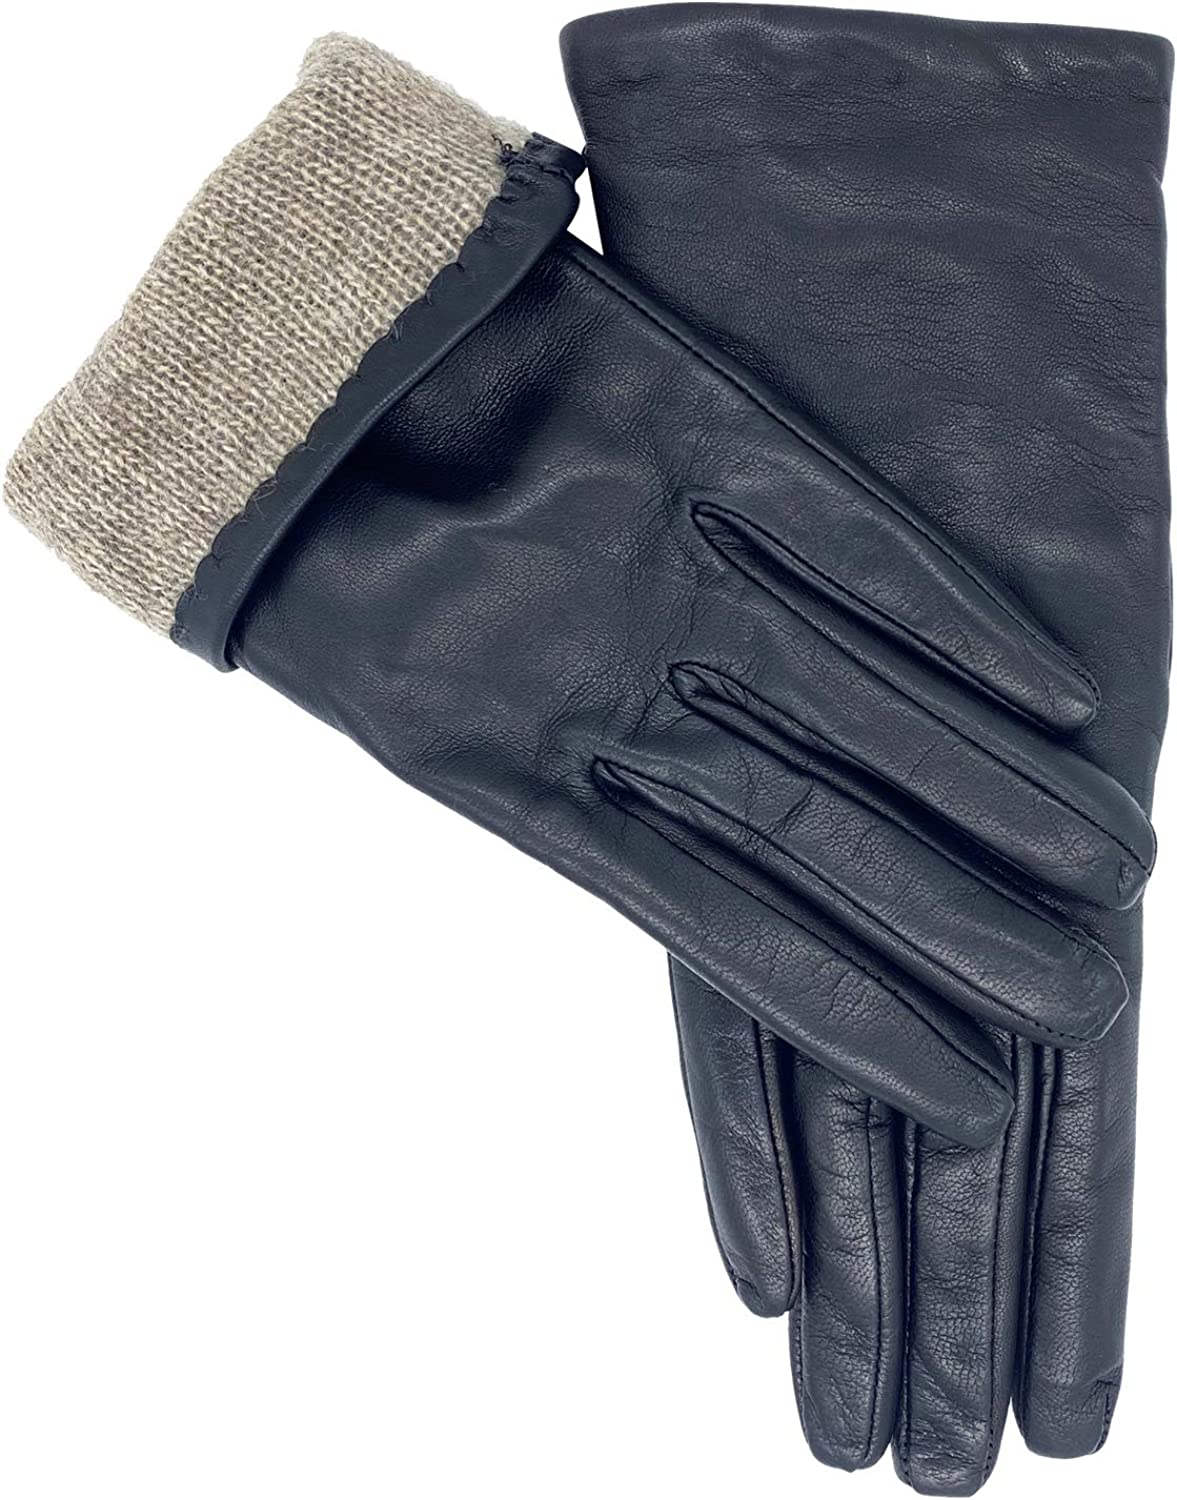 Women's Sheepskin Leather Gloves | MADE IN ITALY | Premium Cashmere Lined